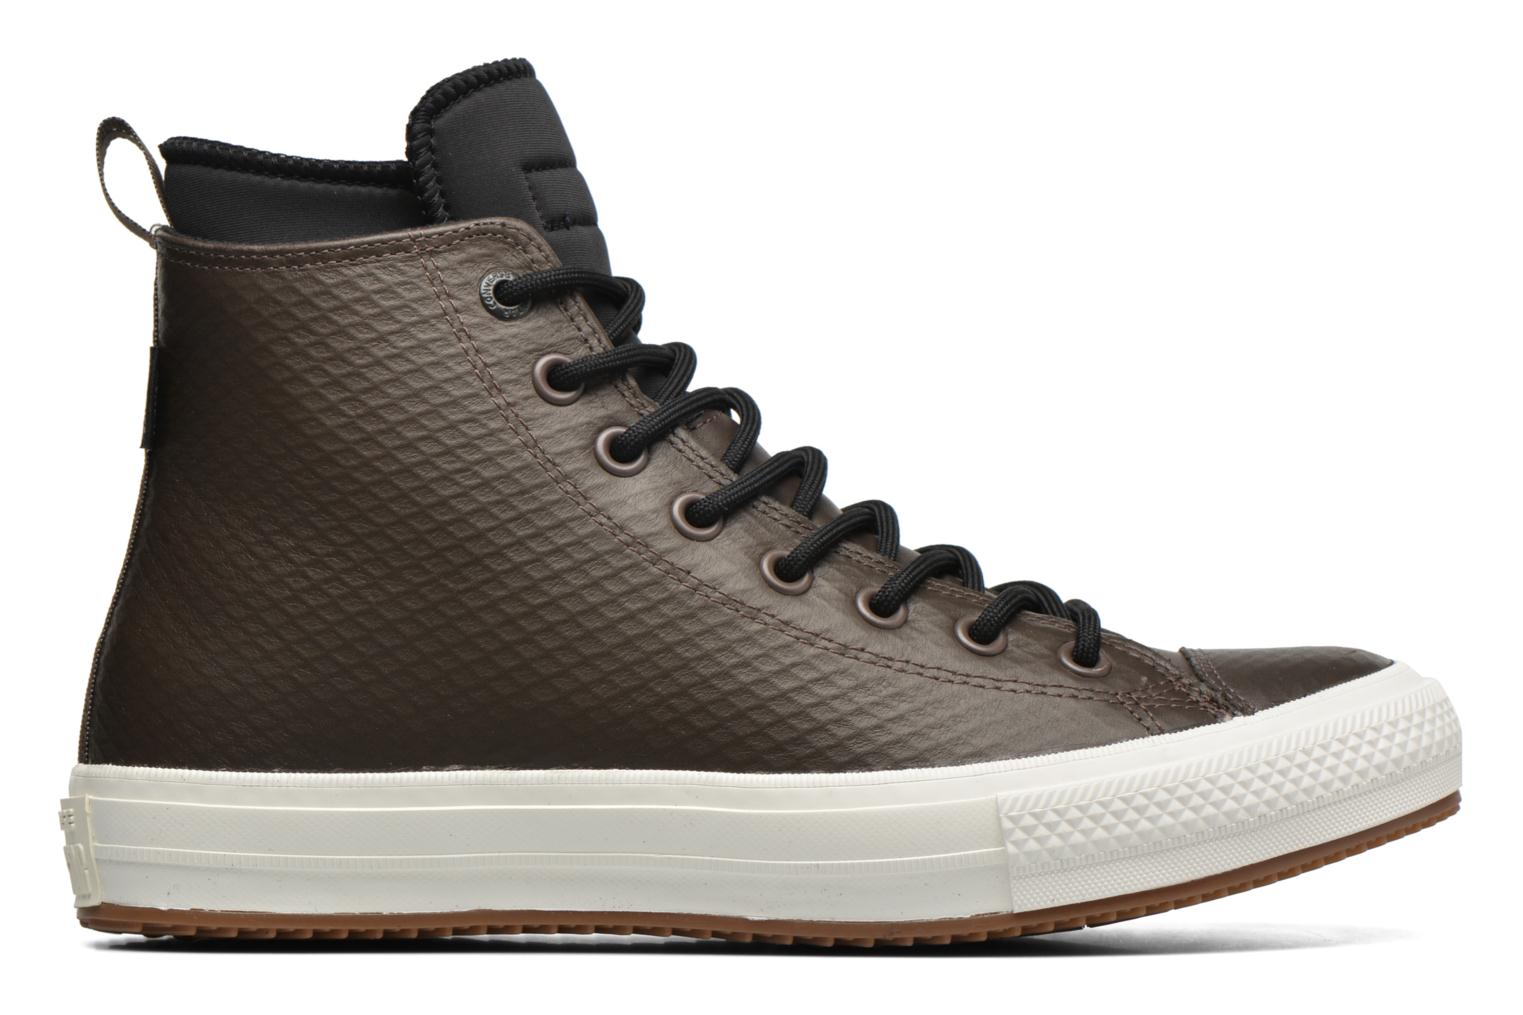 Ctas II Boot Hi M Dark Chocolate/Black